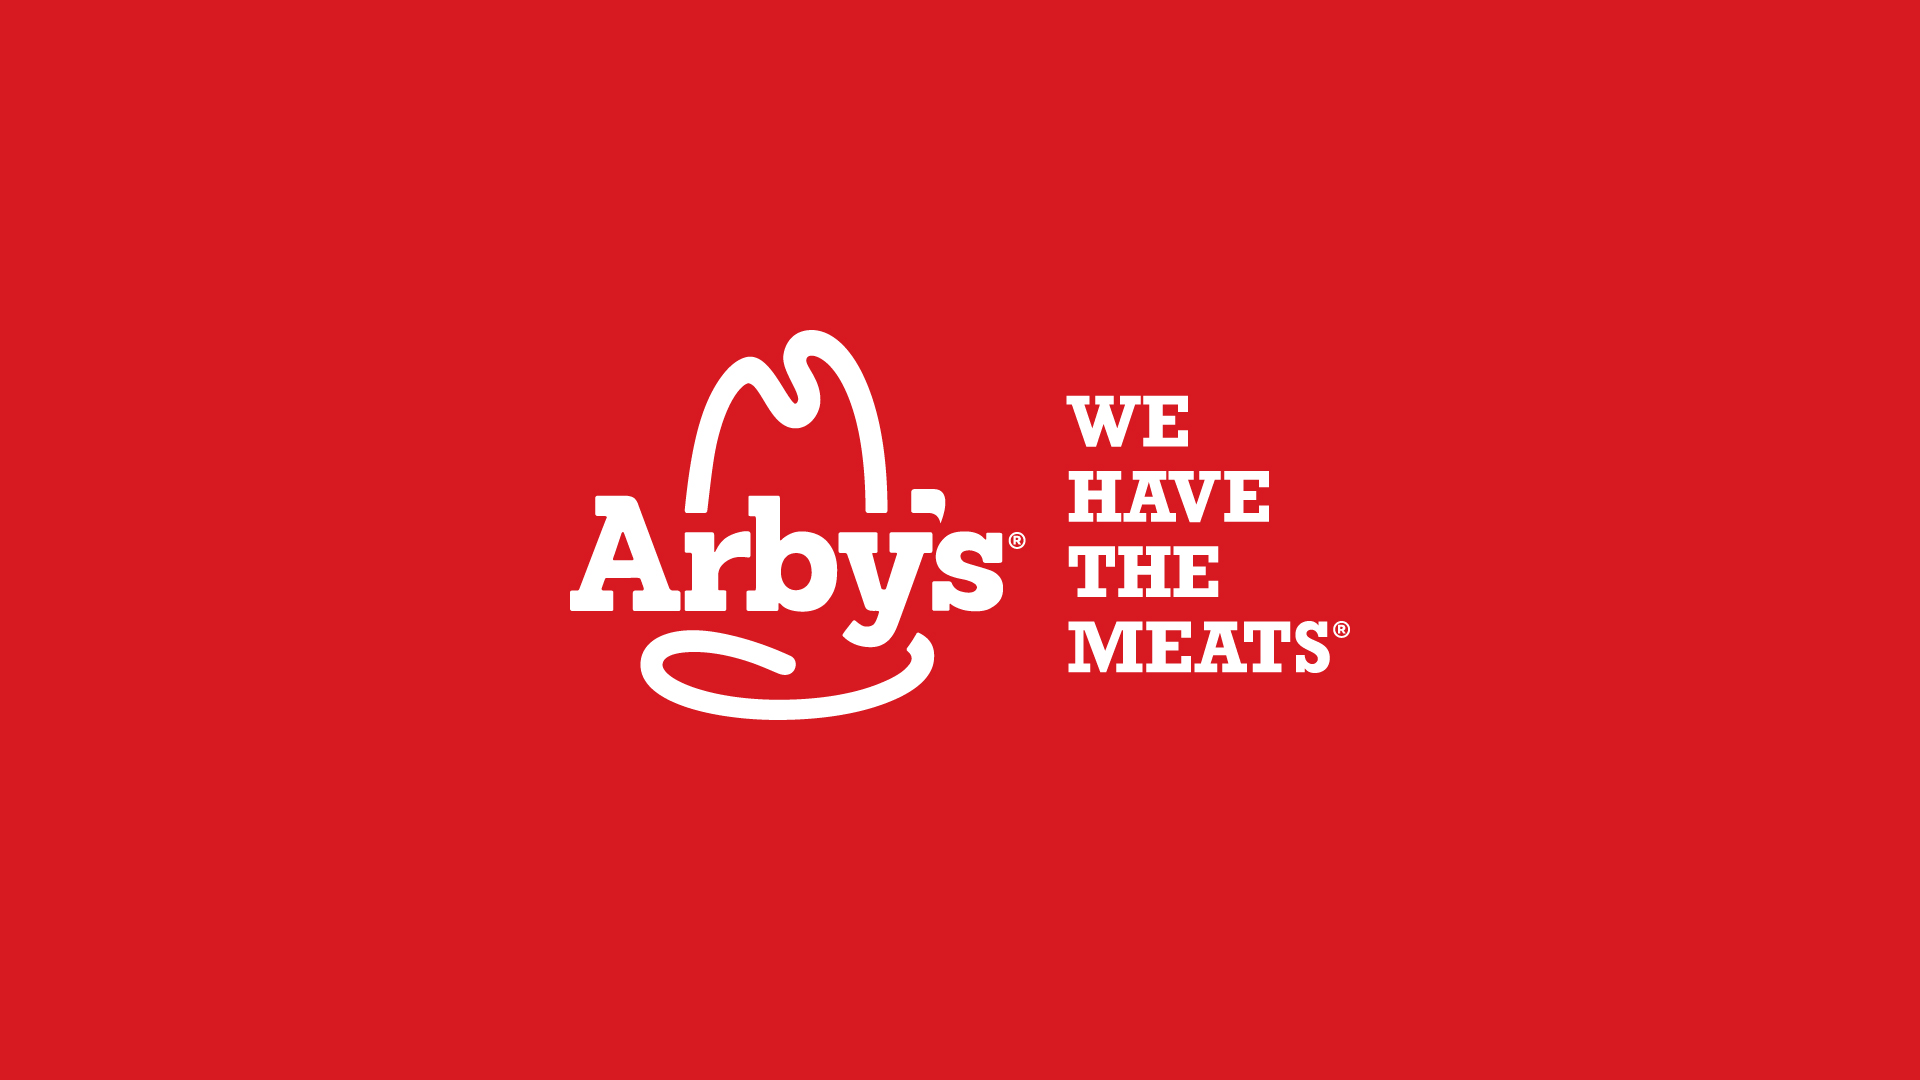 Arby's | We Have The Meats®